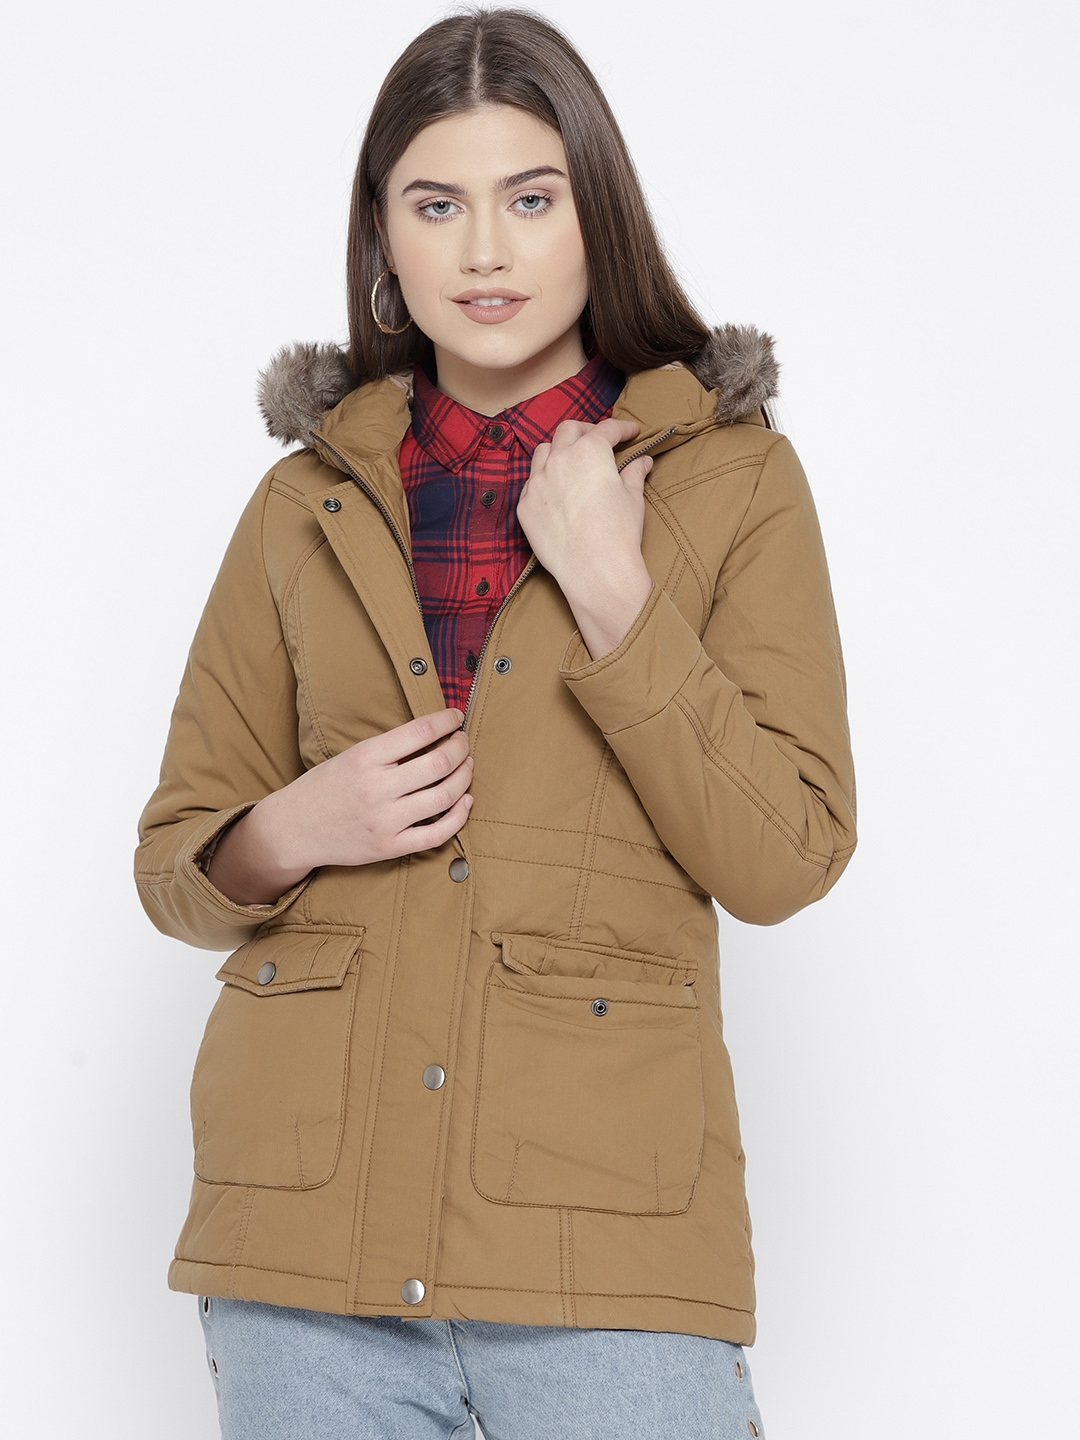 d4afed2c957 Buy Trufit Women Khaki Solid Parka Jacket With Detachable Hood ...